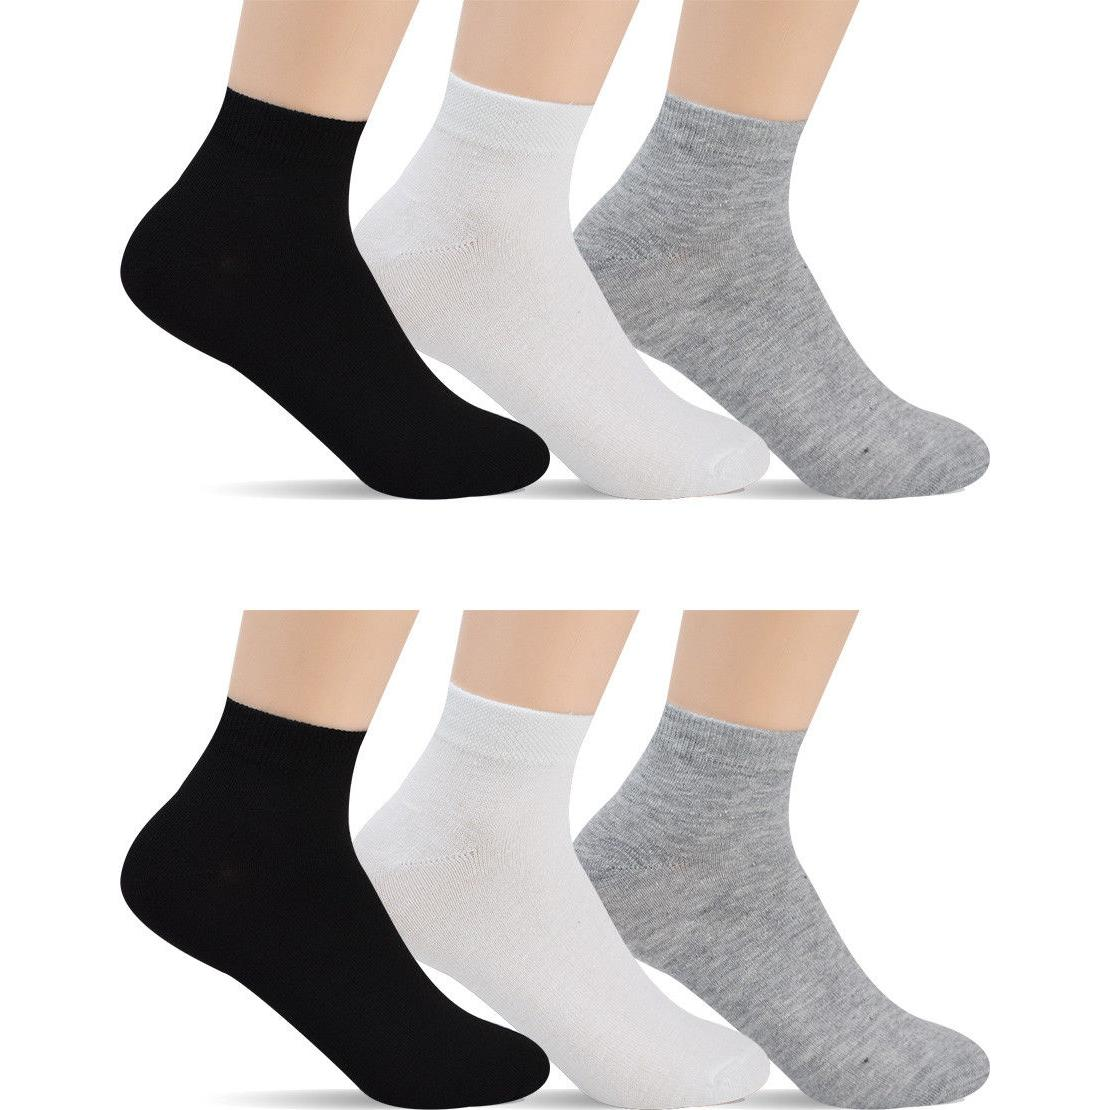 12 Pairs Men's Low Cut Socks - Ankle Black Gray White For Me